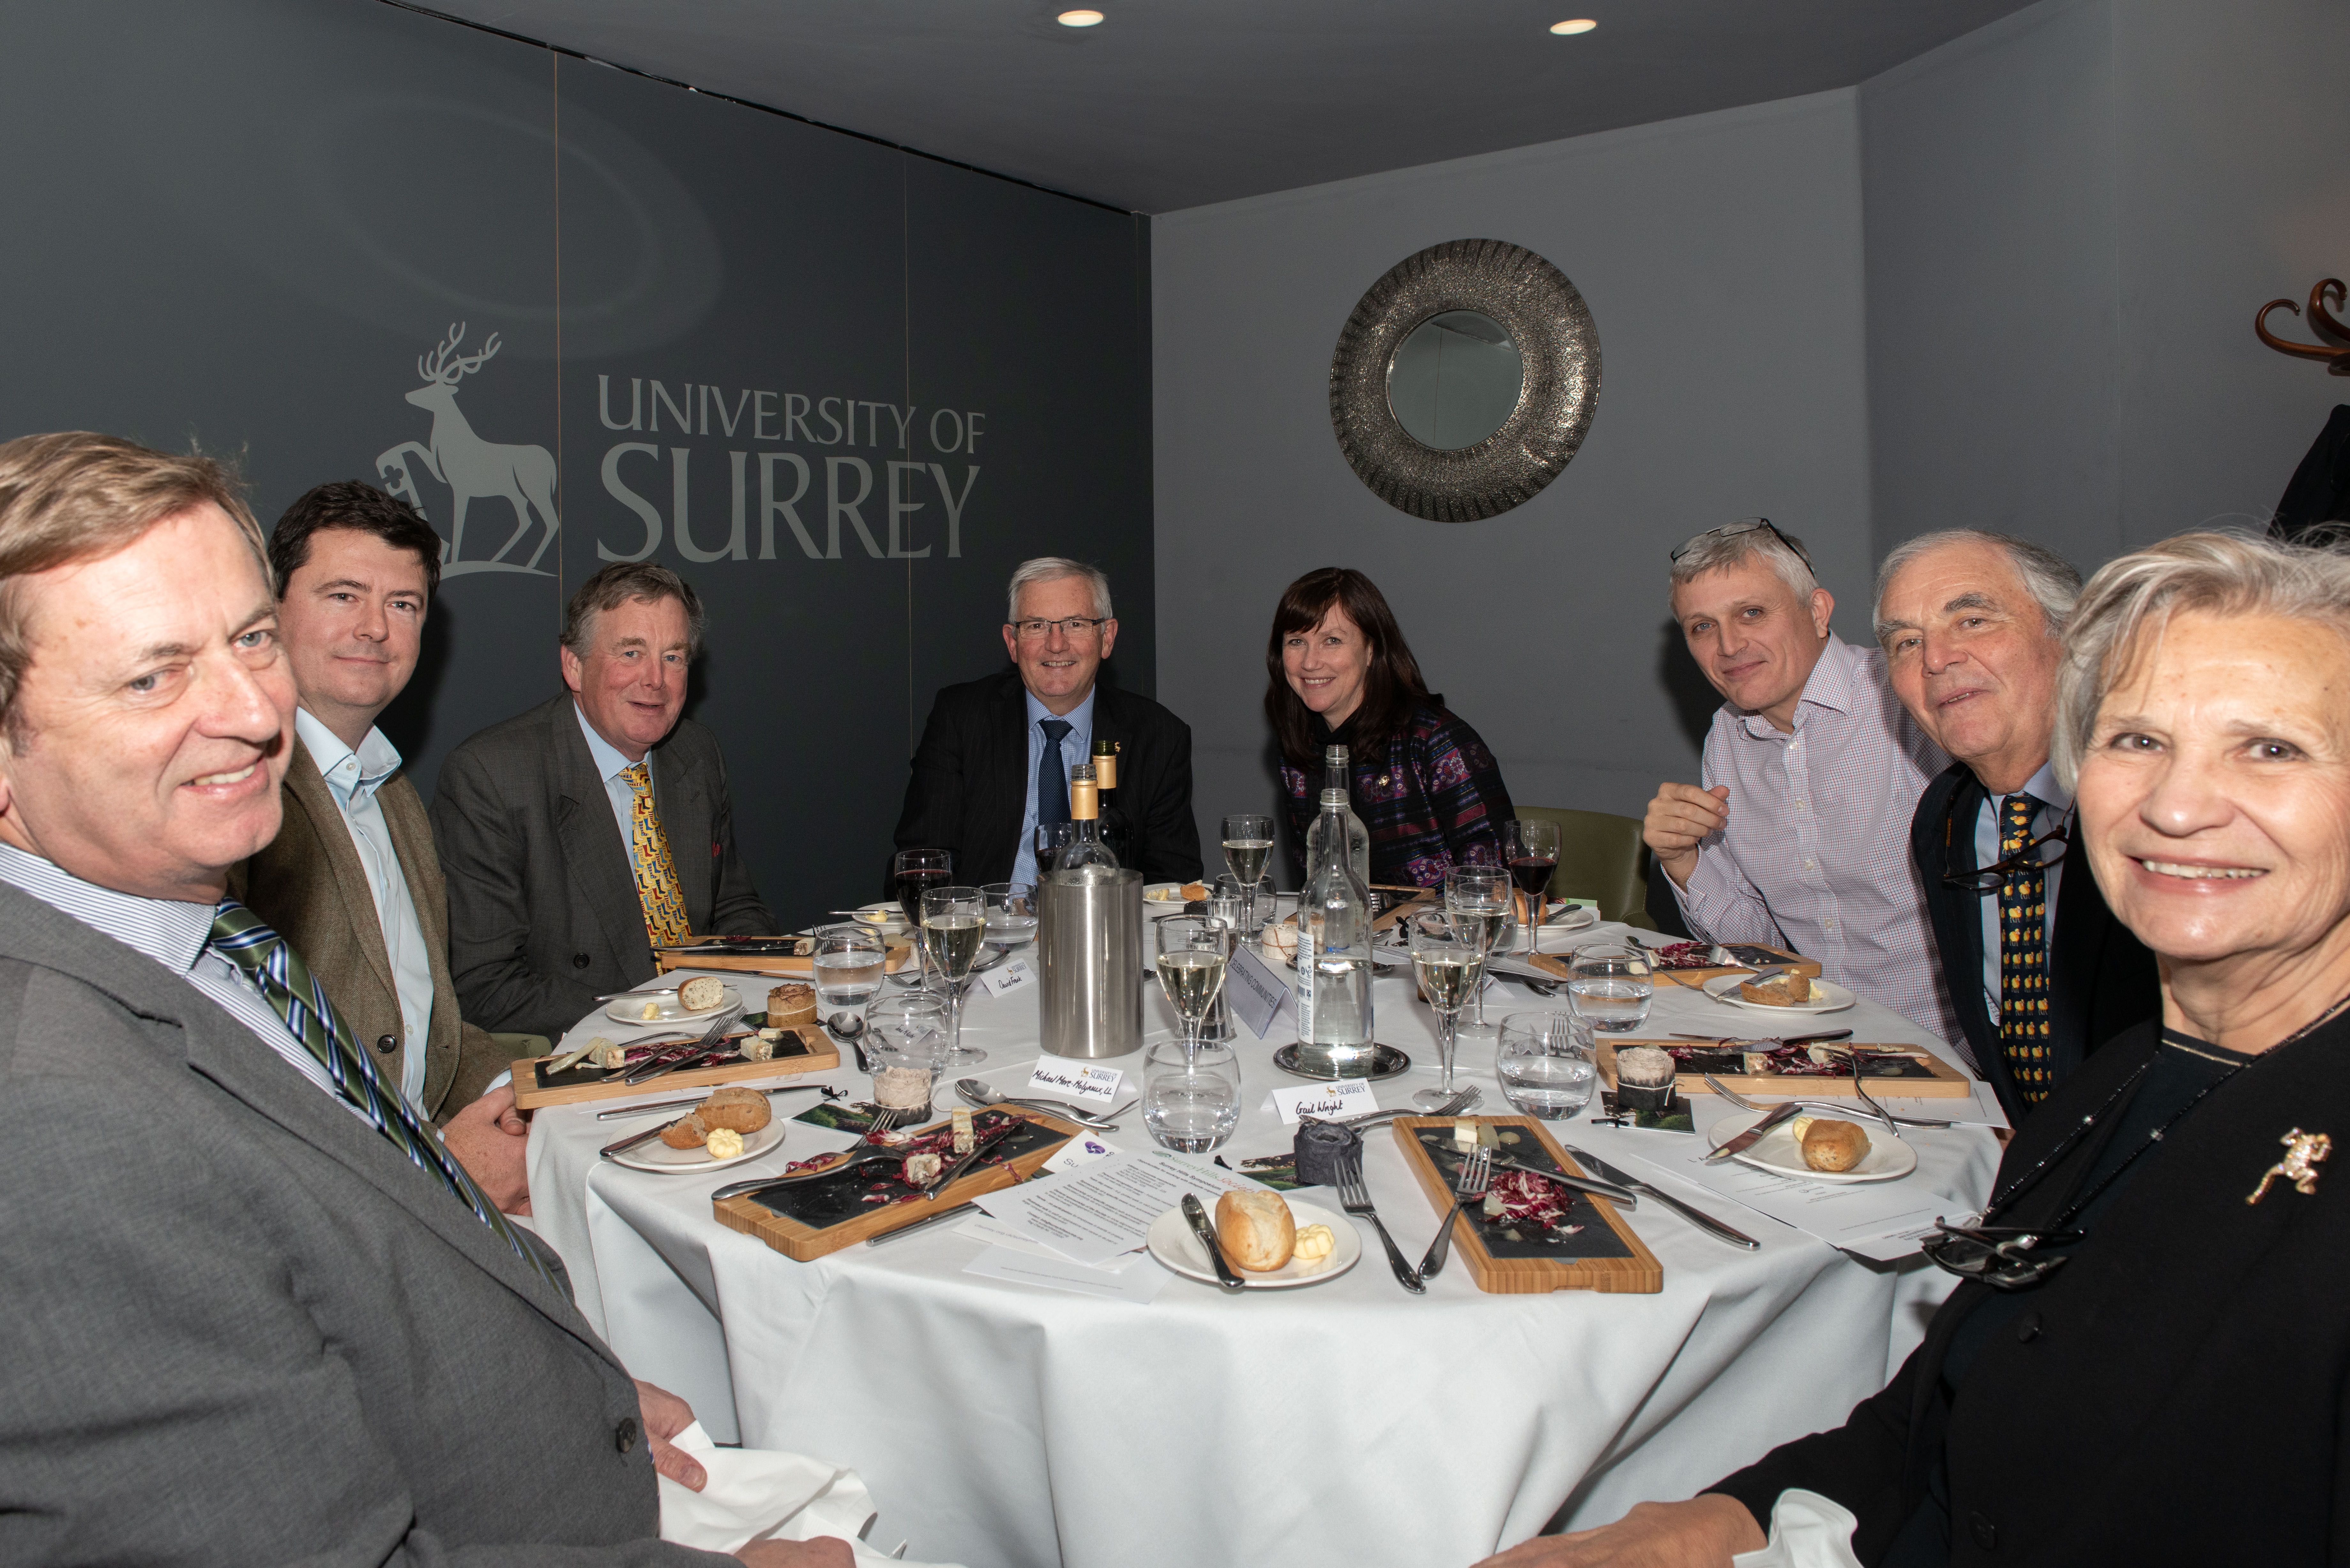 Private Dinner guests: From left Michael More-Molyneux, Jamie McAllister, Guest, Greg Melly, Christine Howard, Adam Wallace, David & Gail Wright